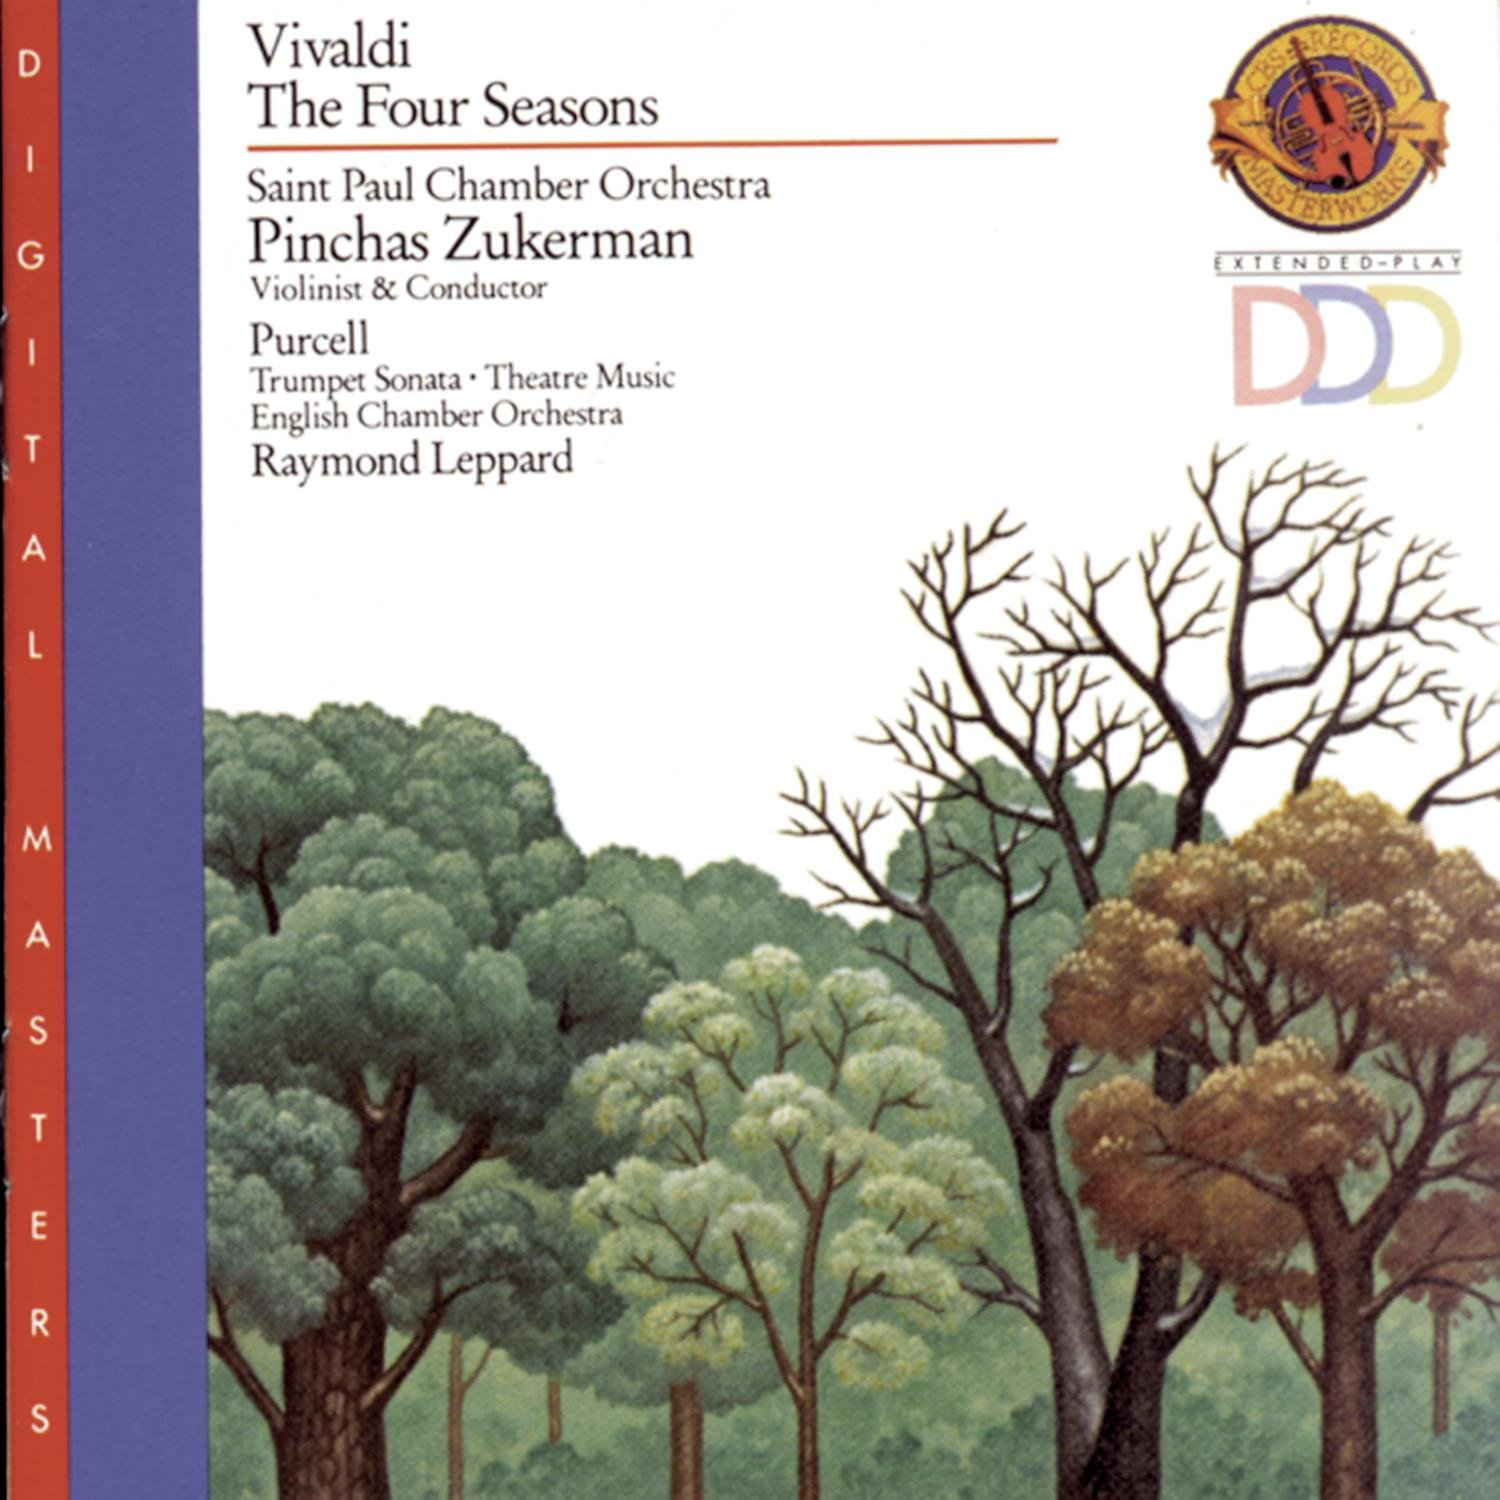 Vivaldi: The Four Seasons and other Baroque Works